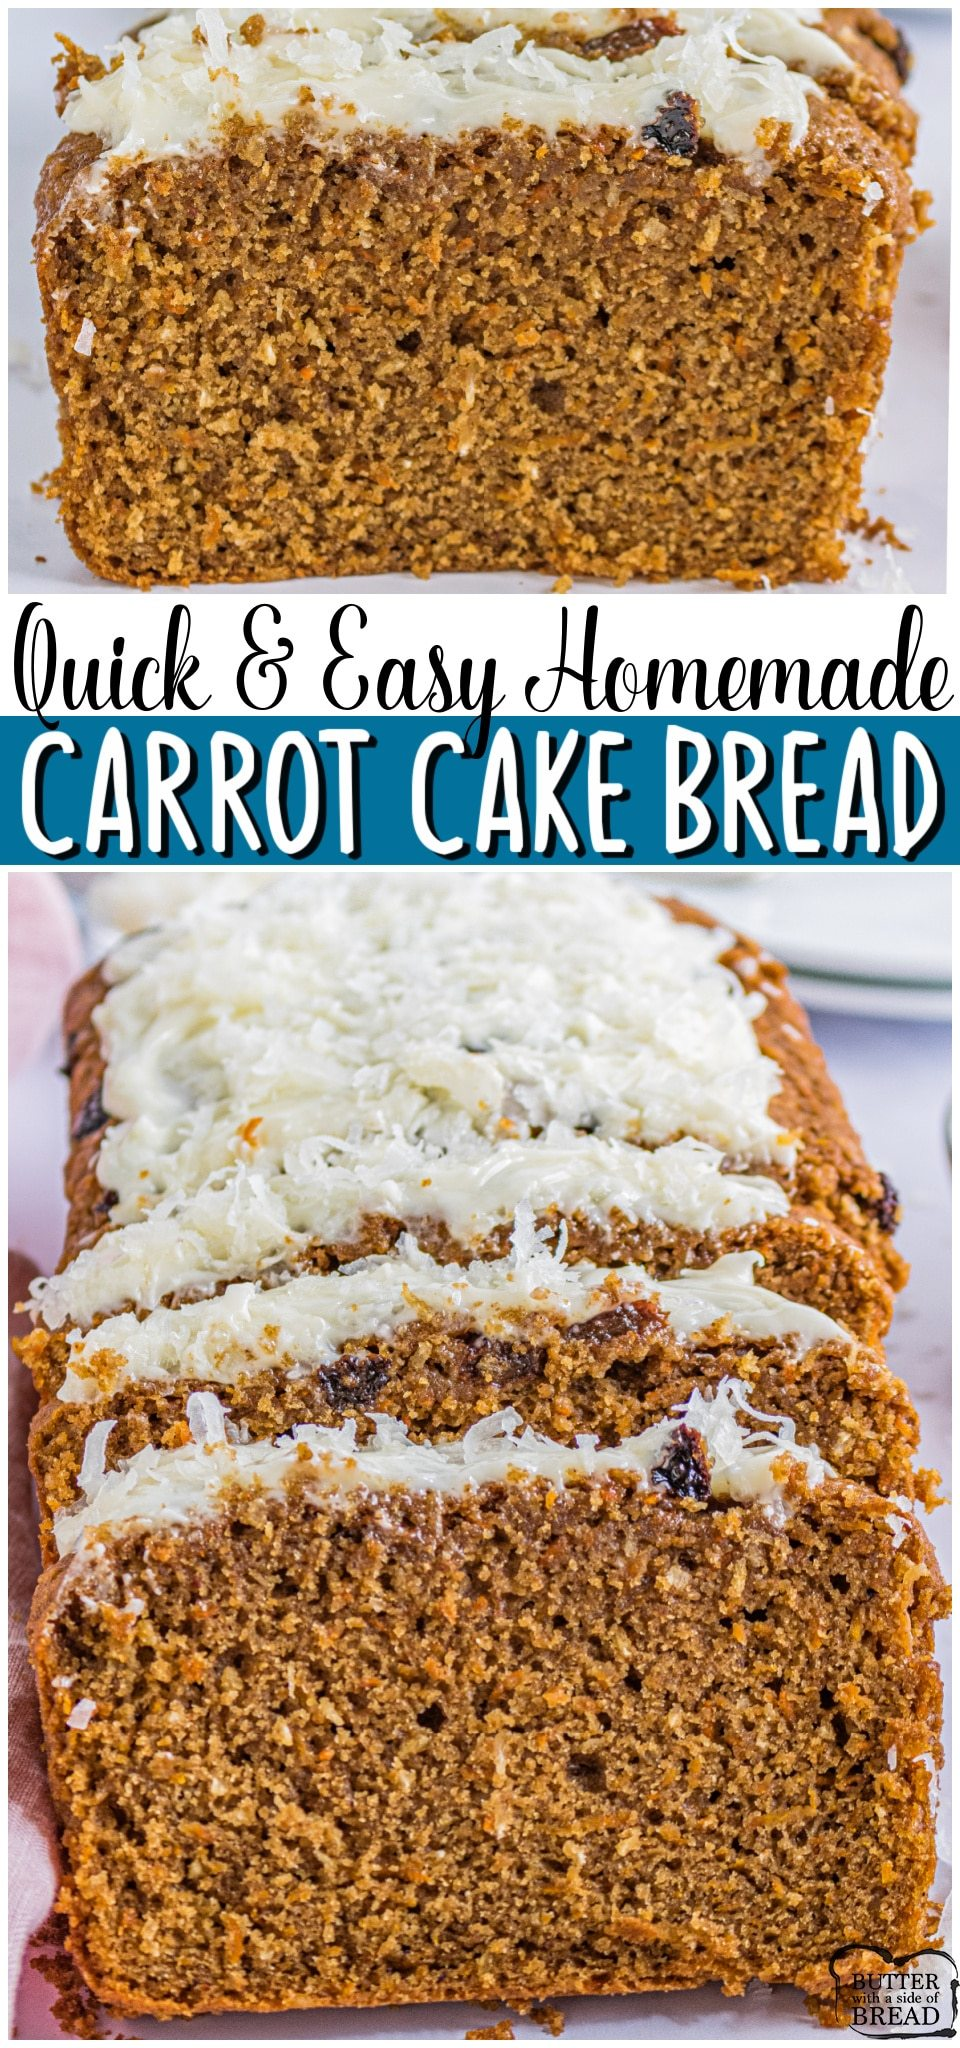 Carrot cake bread is everything you love about Carrot Cake in bread form! Spiced sweet bread with coconut & raisins, topped with a lovely cream cheese frosting. #bread #carrotcake #creamcheesefrosting #baking #easyrecipe from BUTTER WITH A SIDE OF BREAD